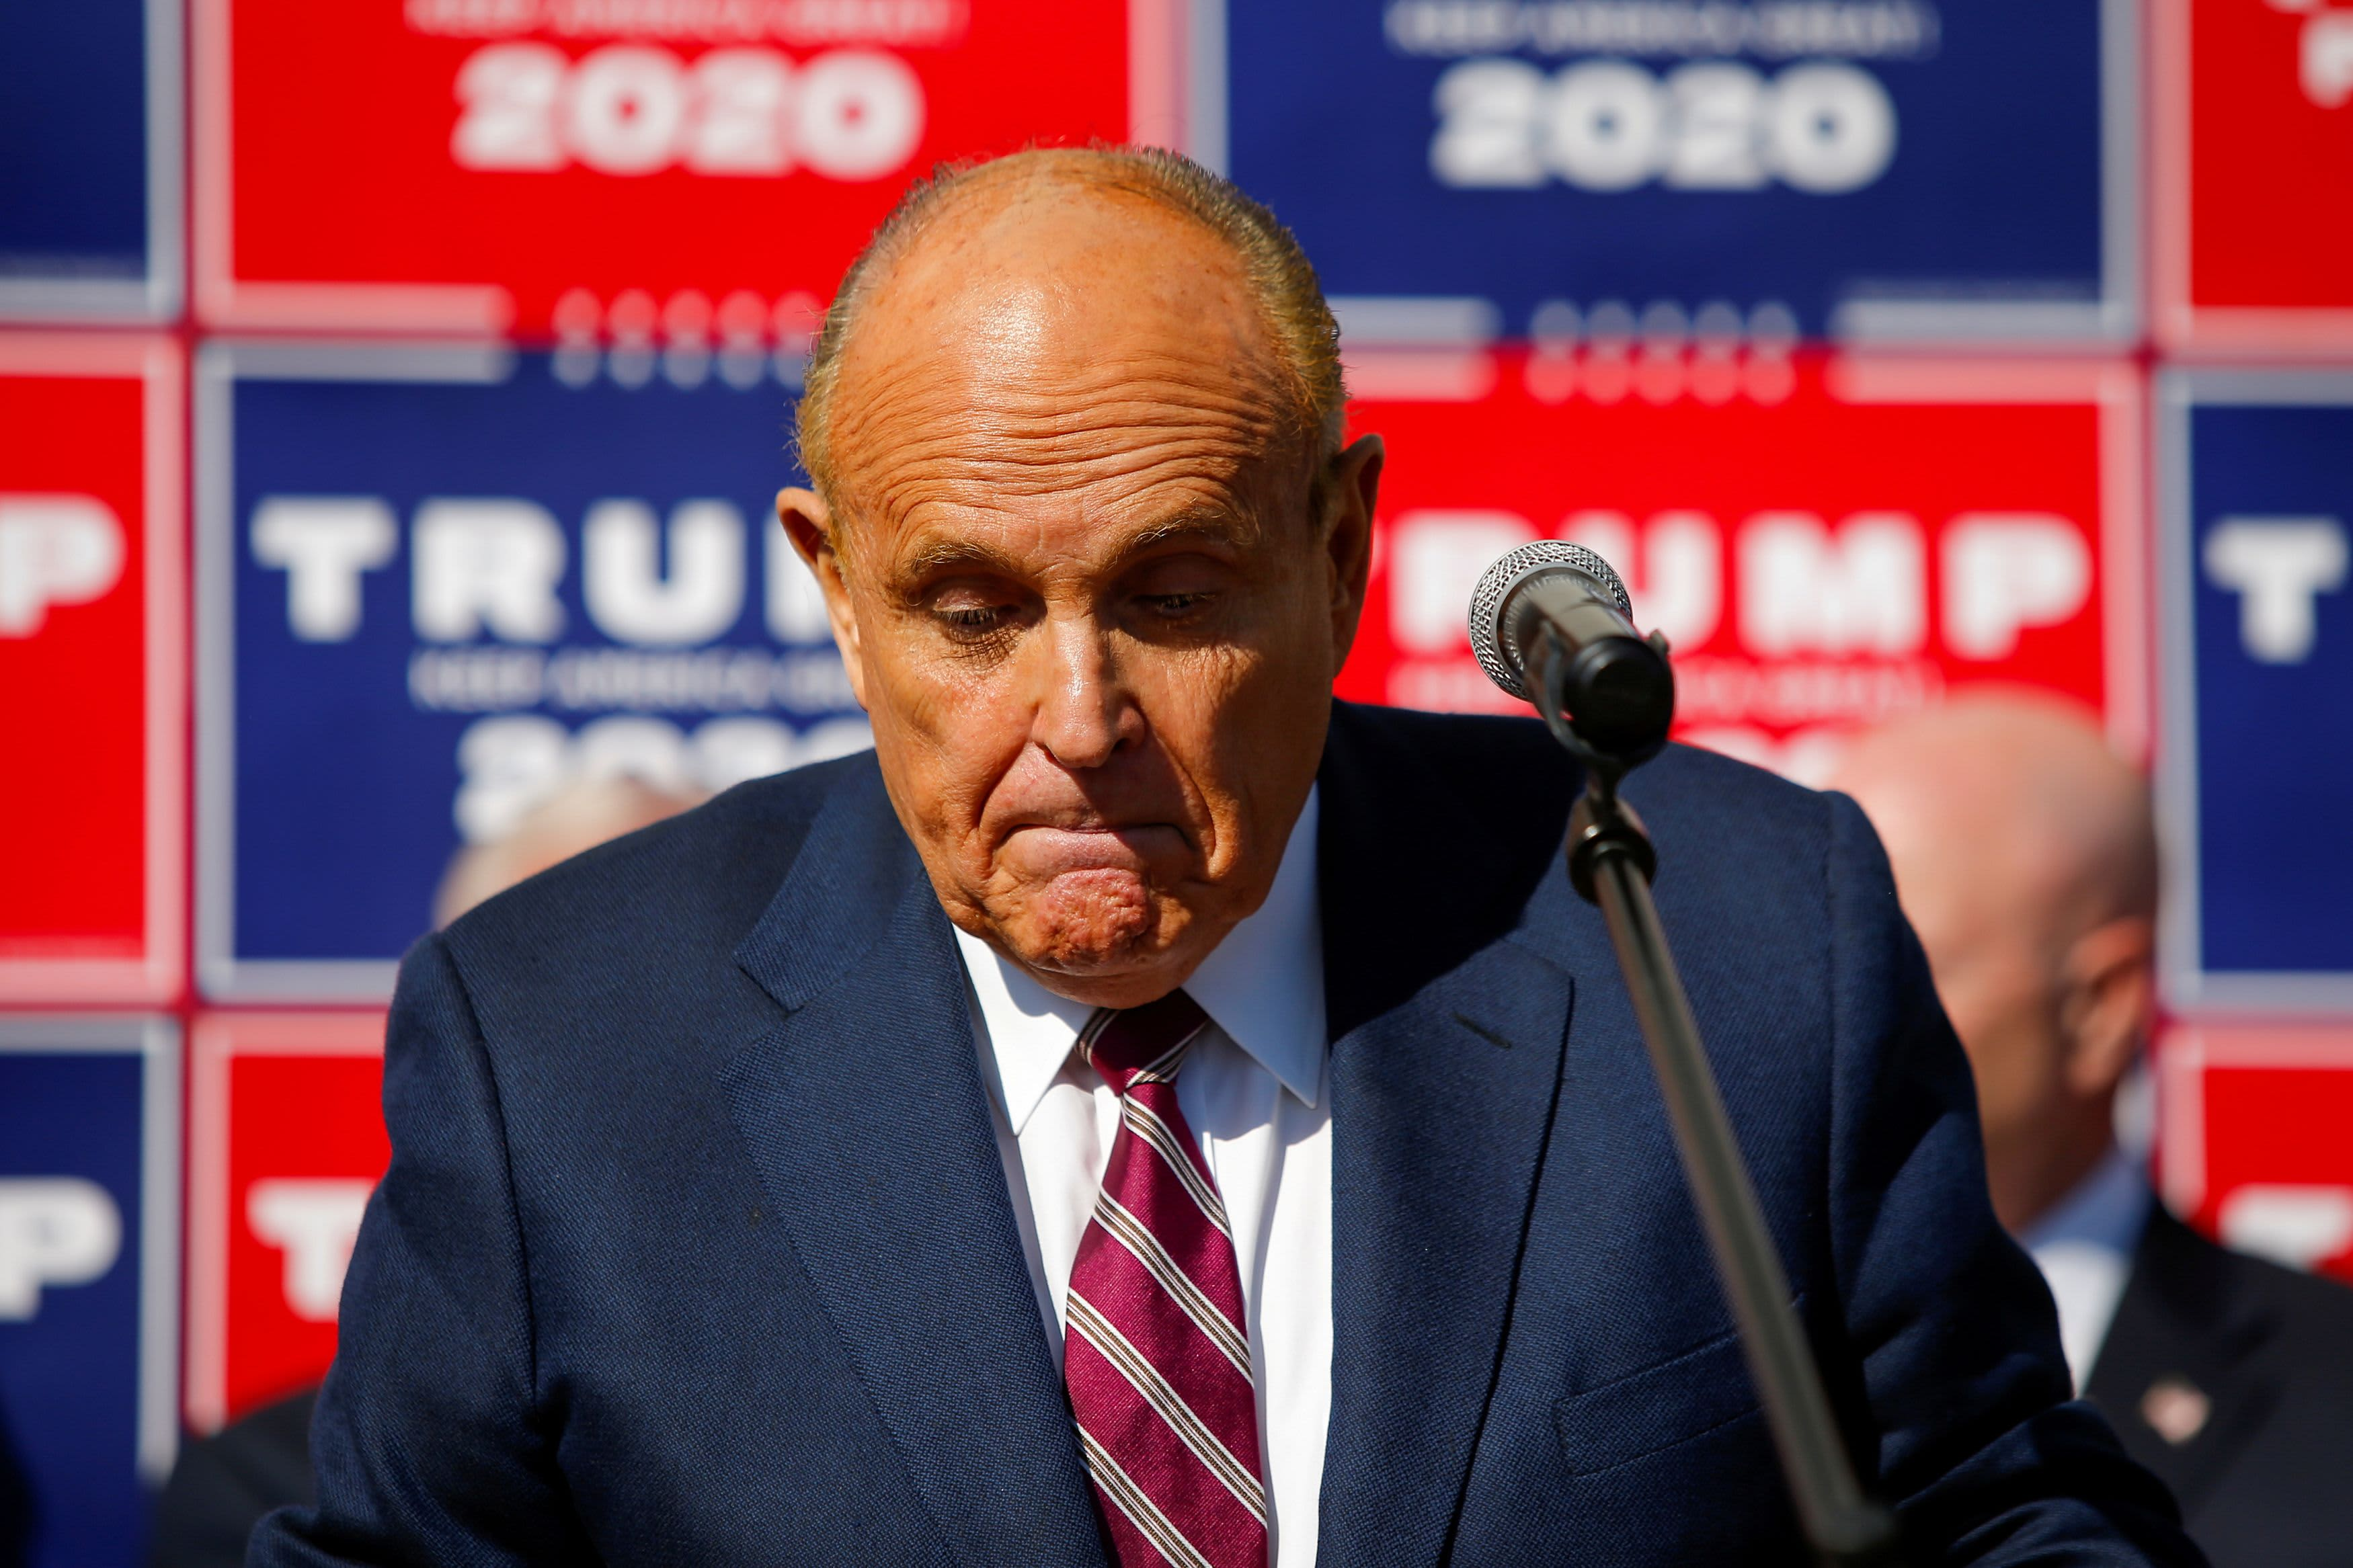 Federal search warrant executed at Rudy Giuliani's NYC apartment